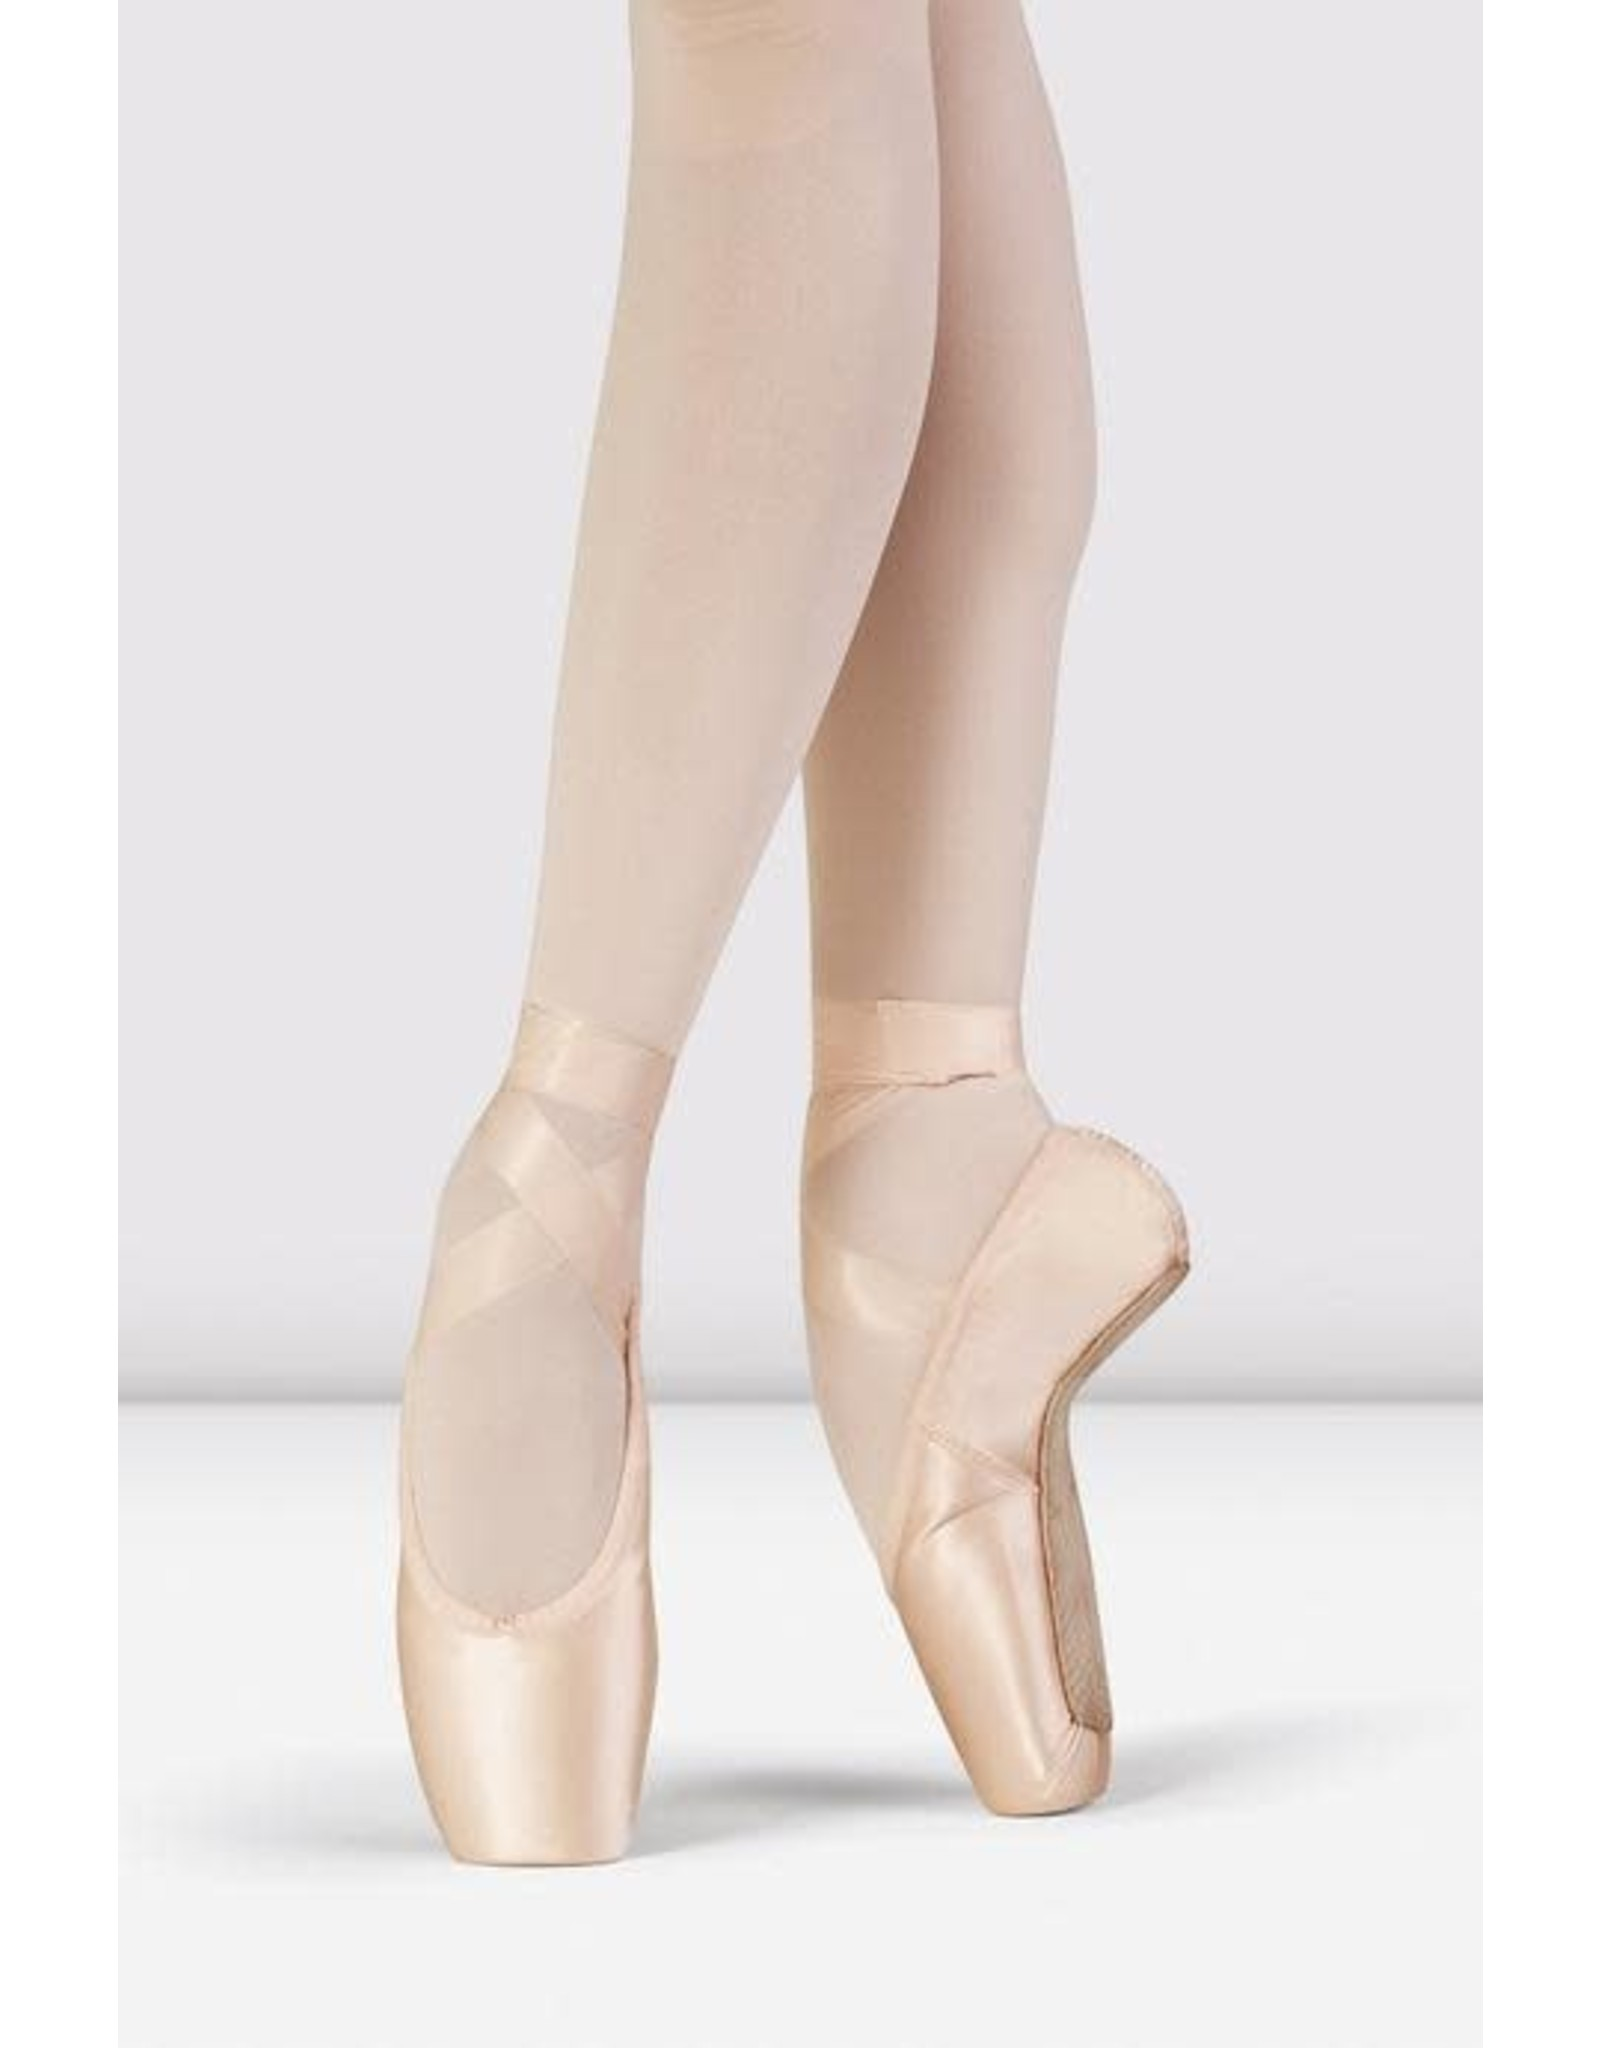 Bloch Bloch Grace Pointe Shoes